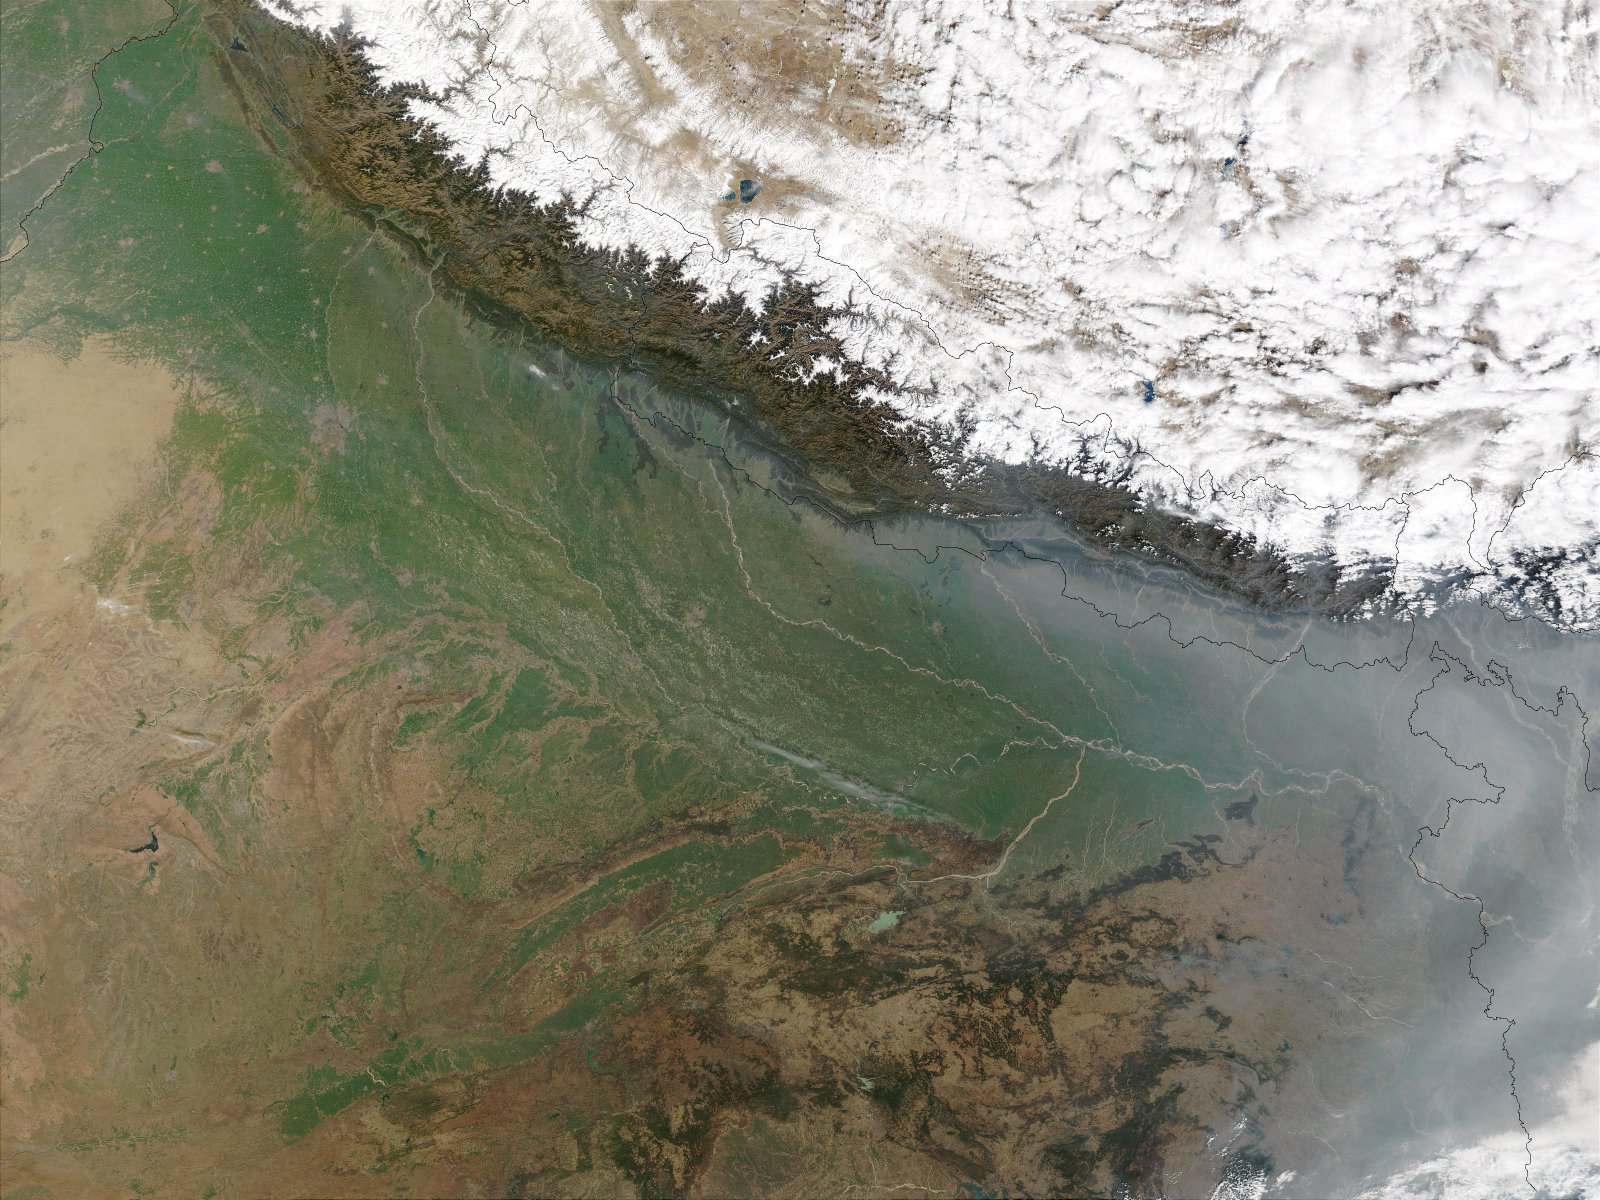 View of a portion of the Indo-Gangetic plain from space